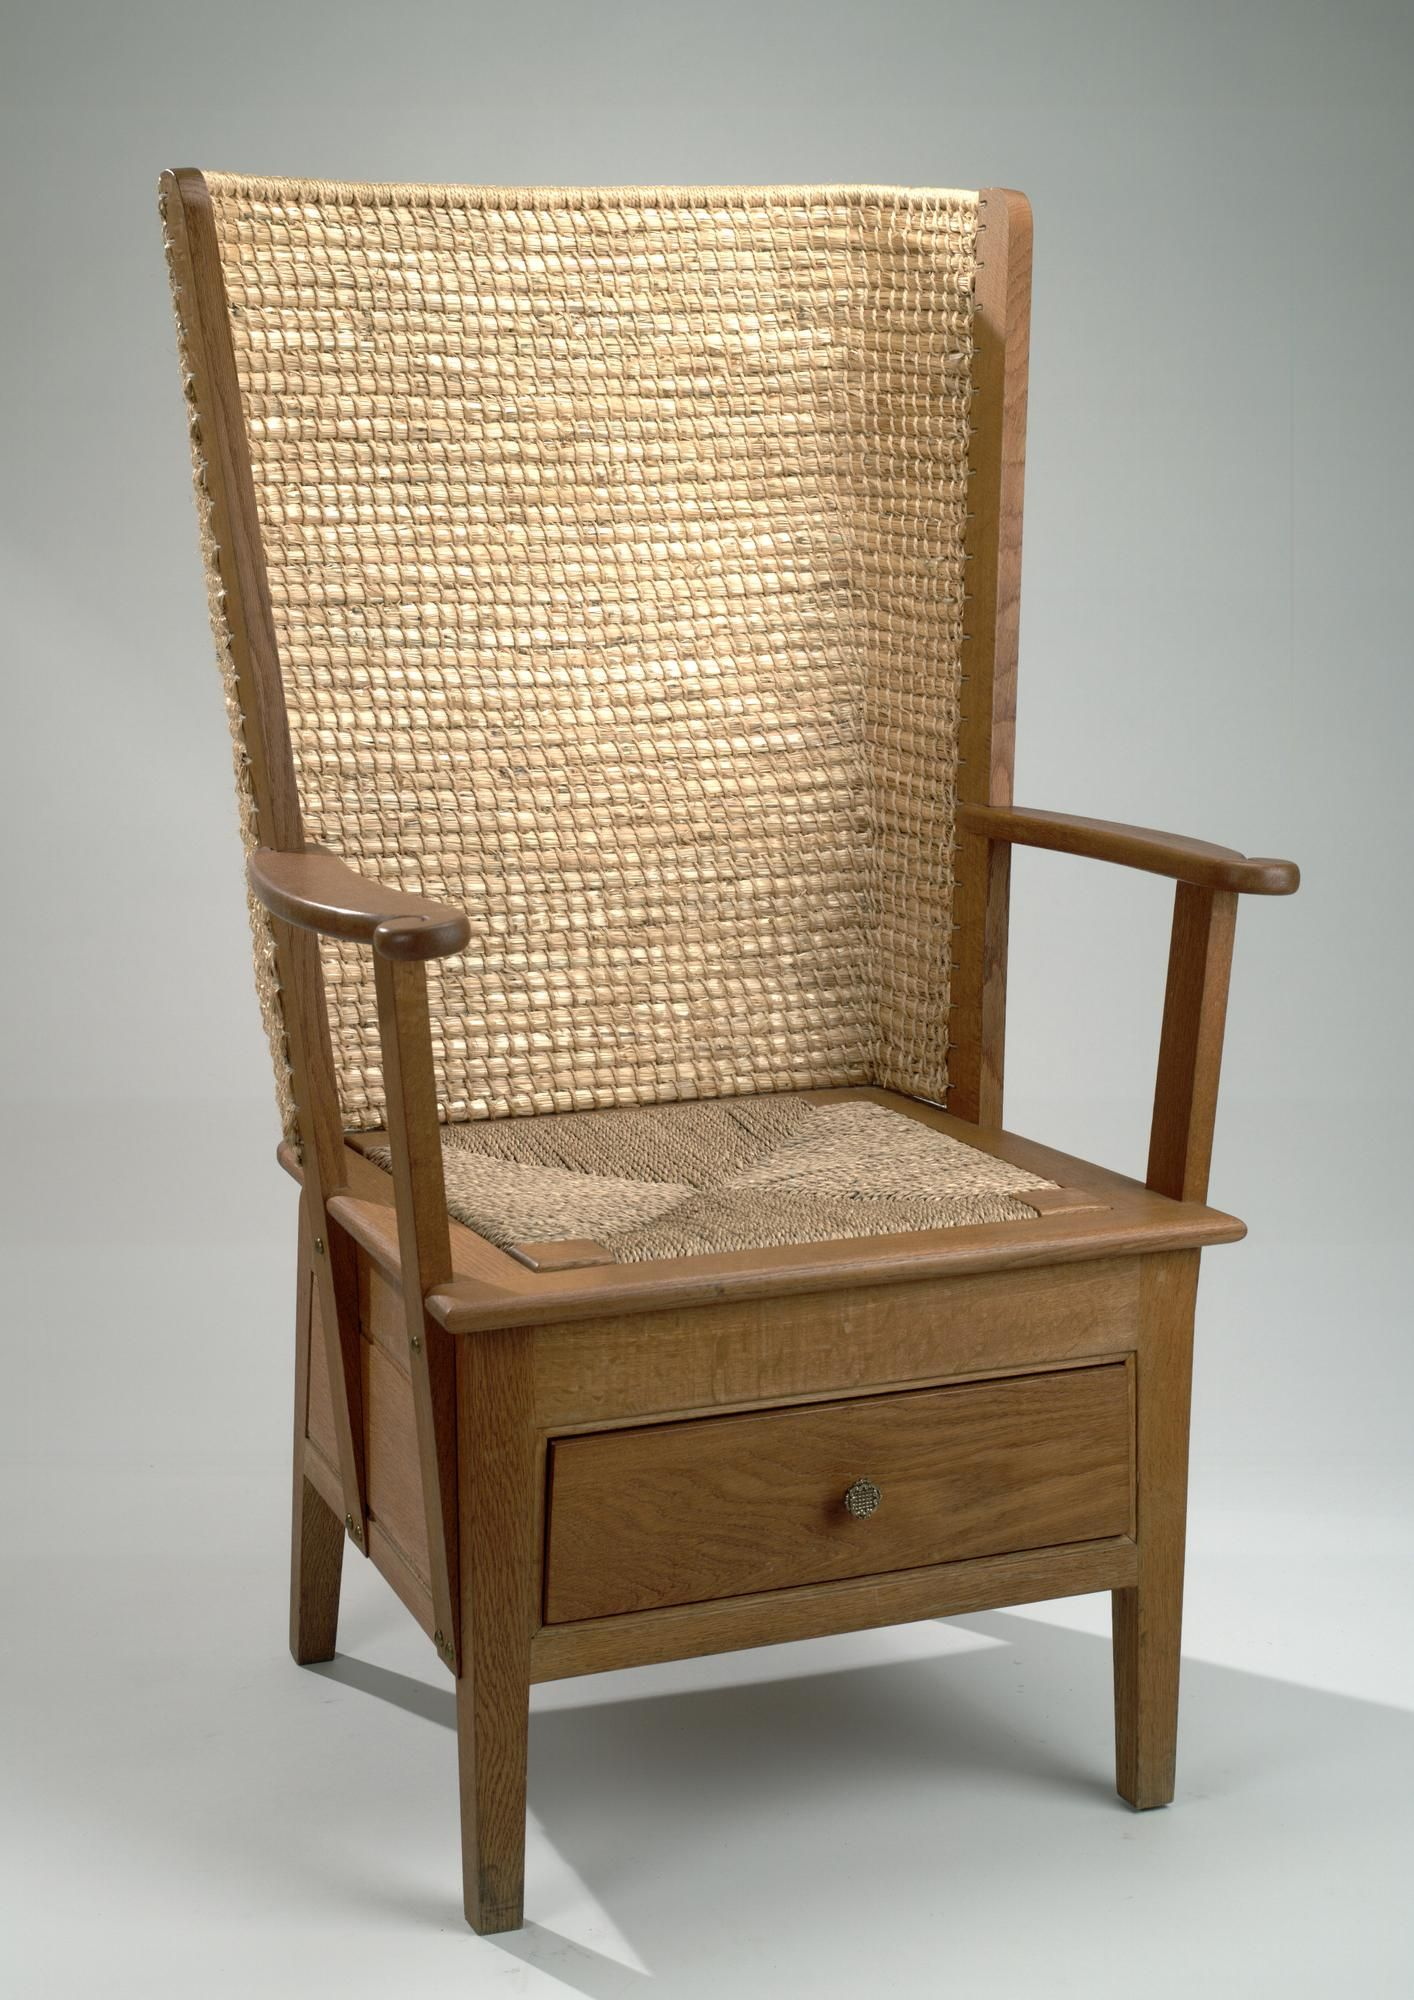 Orkney Chair, A Chair Of Japanese Oak With A Straw Back: Scottish, John  Davidson, 1985.